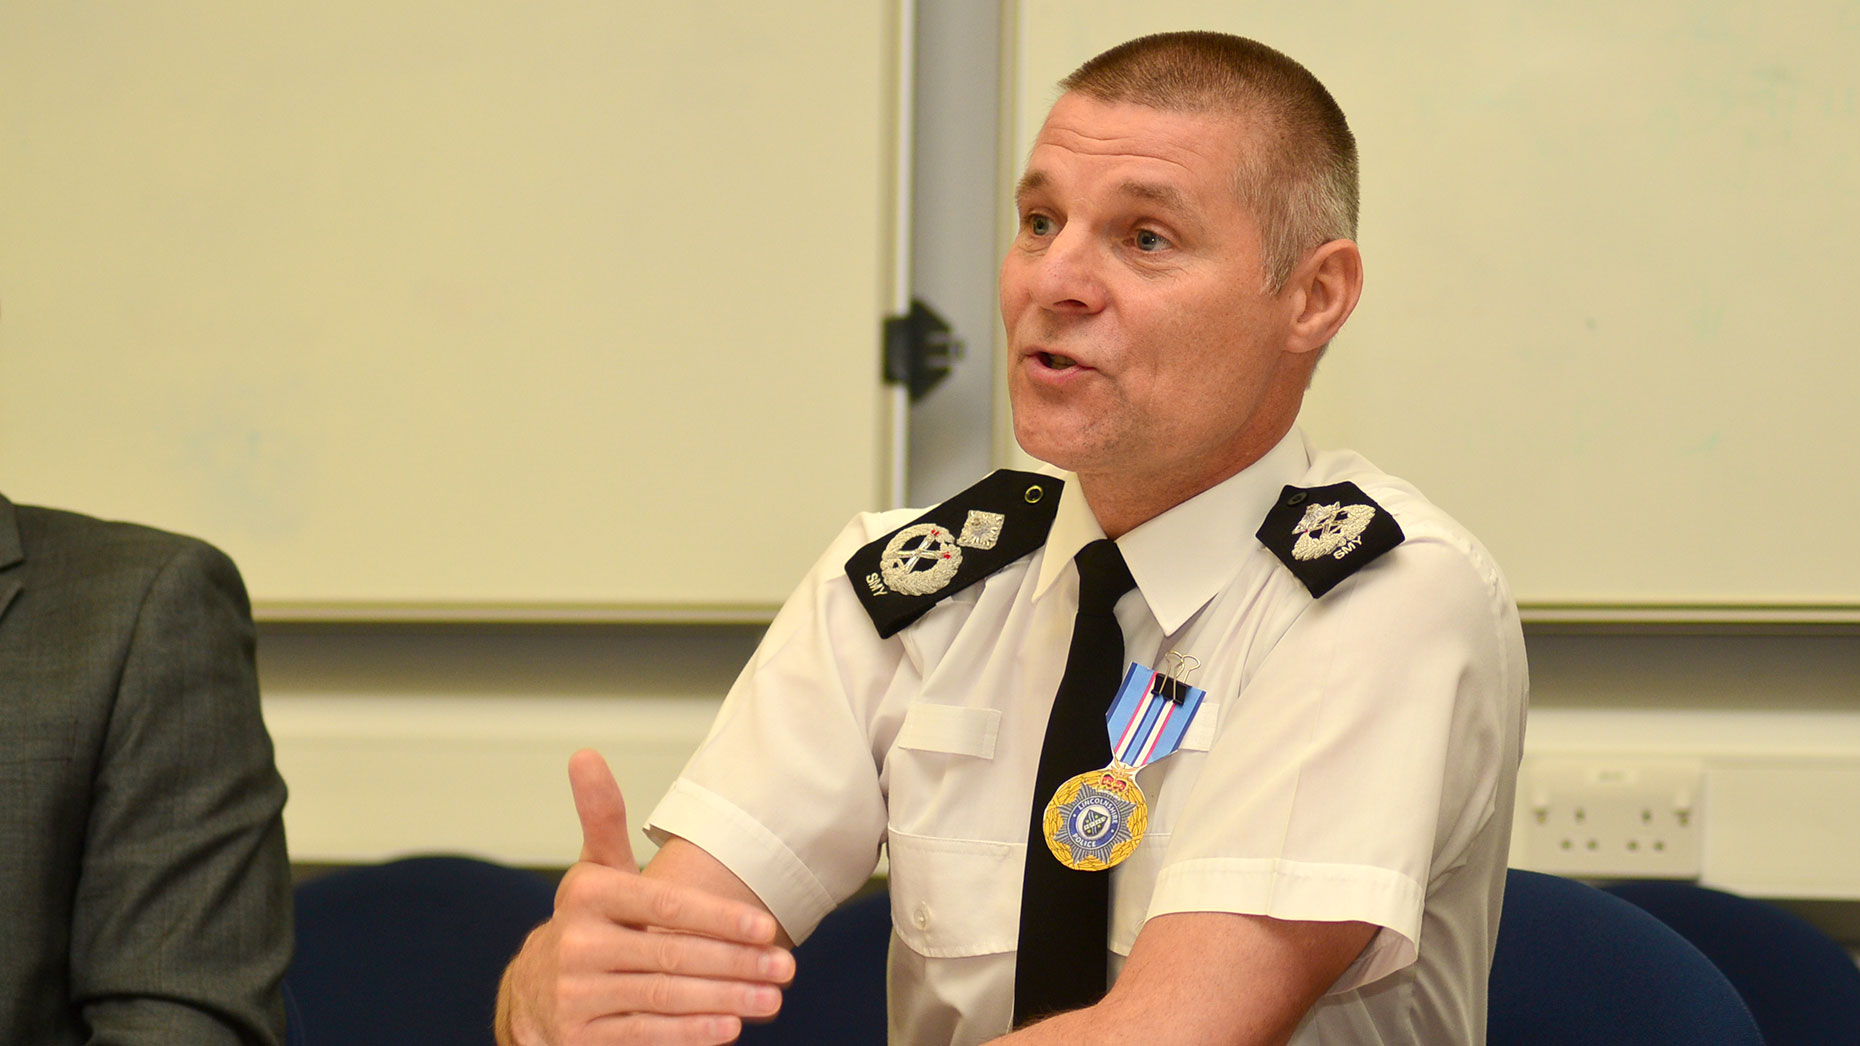 Keith Smy, Lincolnshire Police Deputy Chief Constable. Photo: Steve Smailes for The Lincolnite